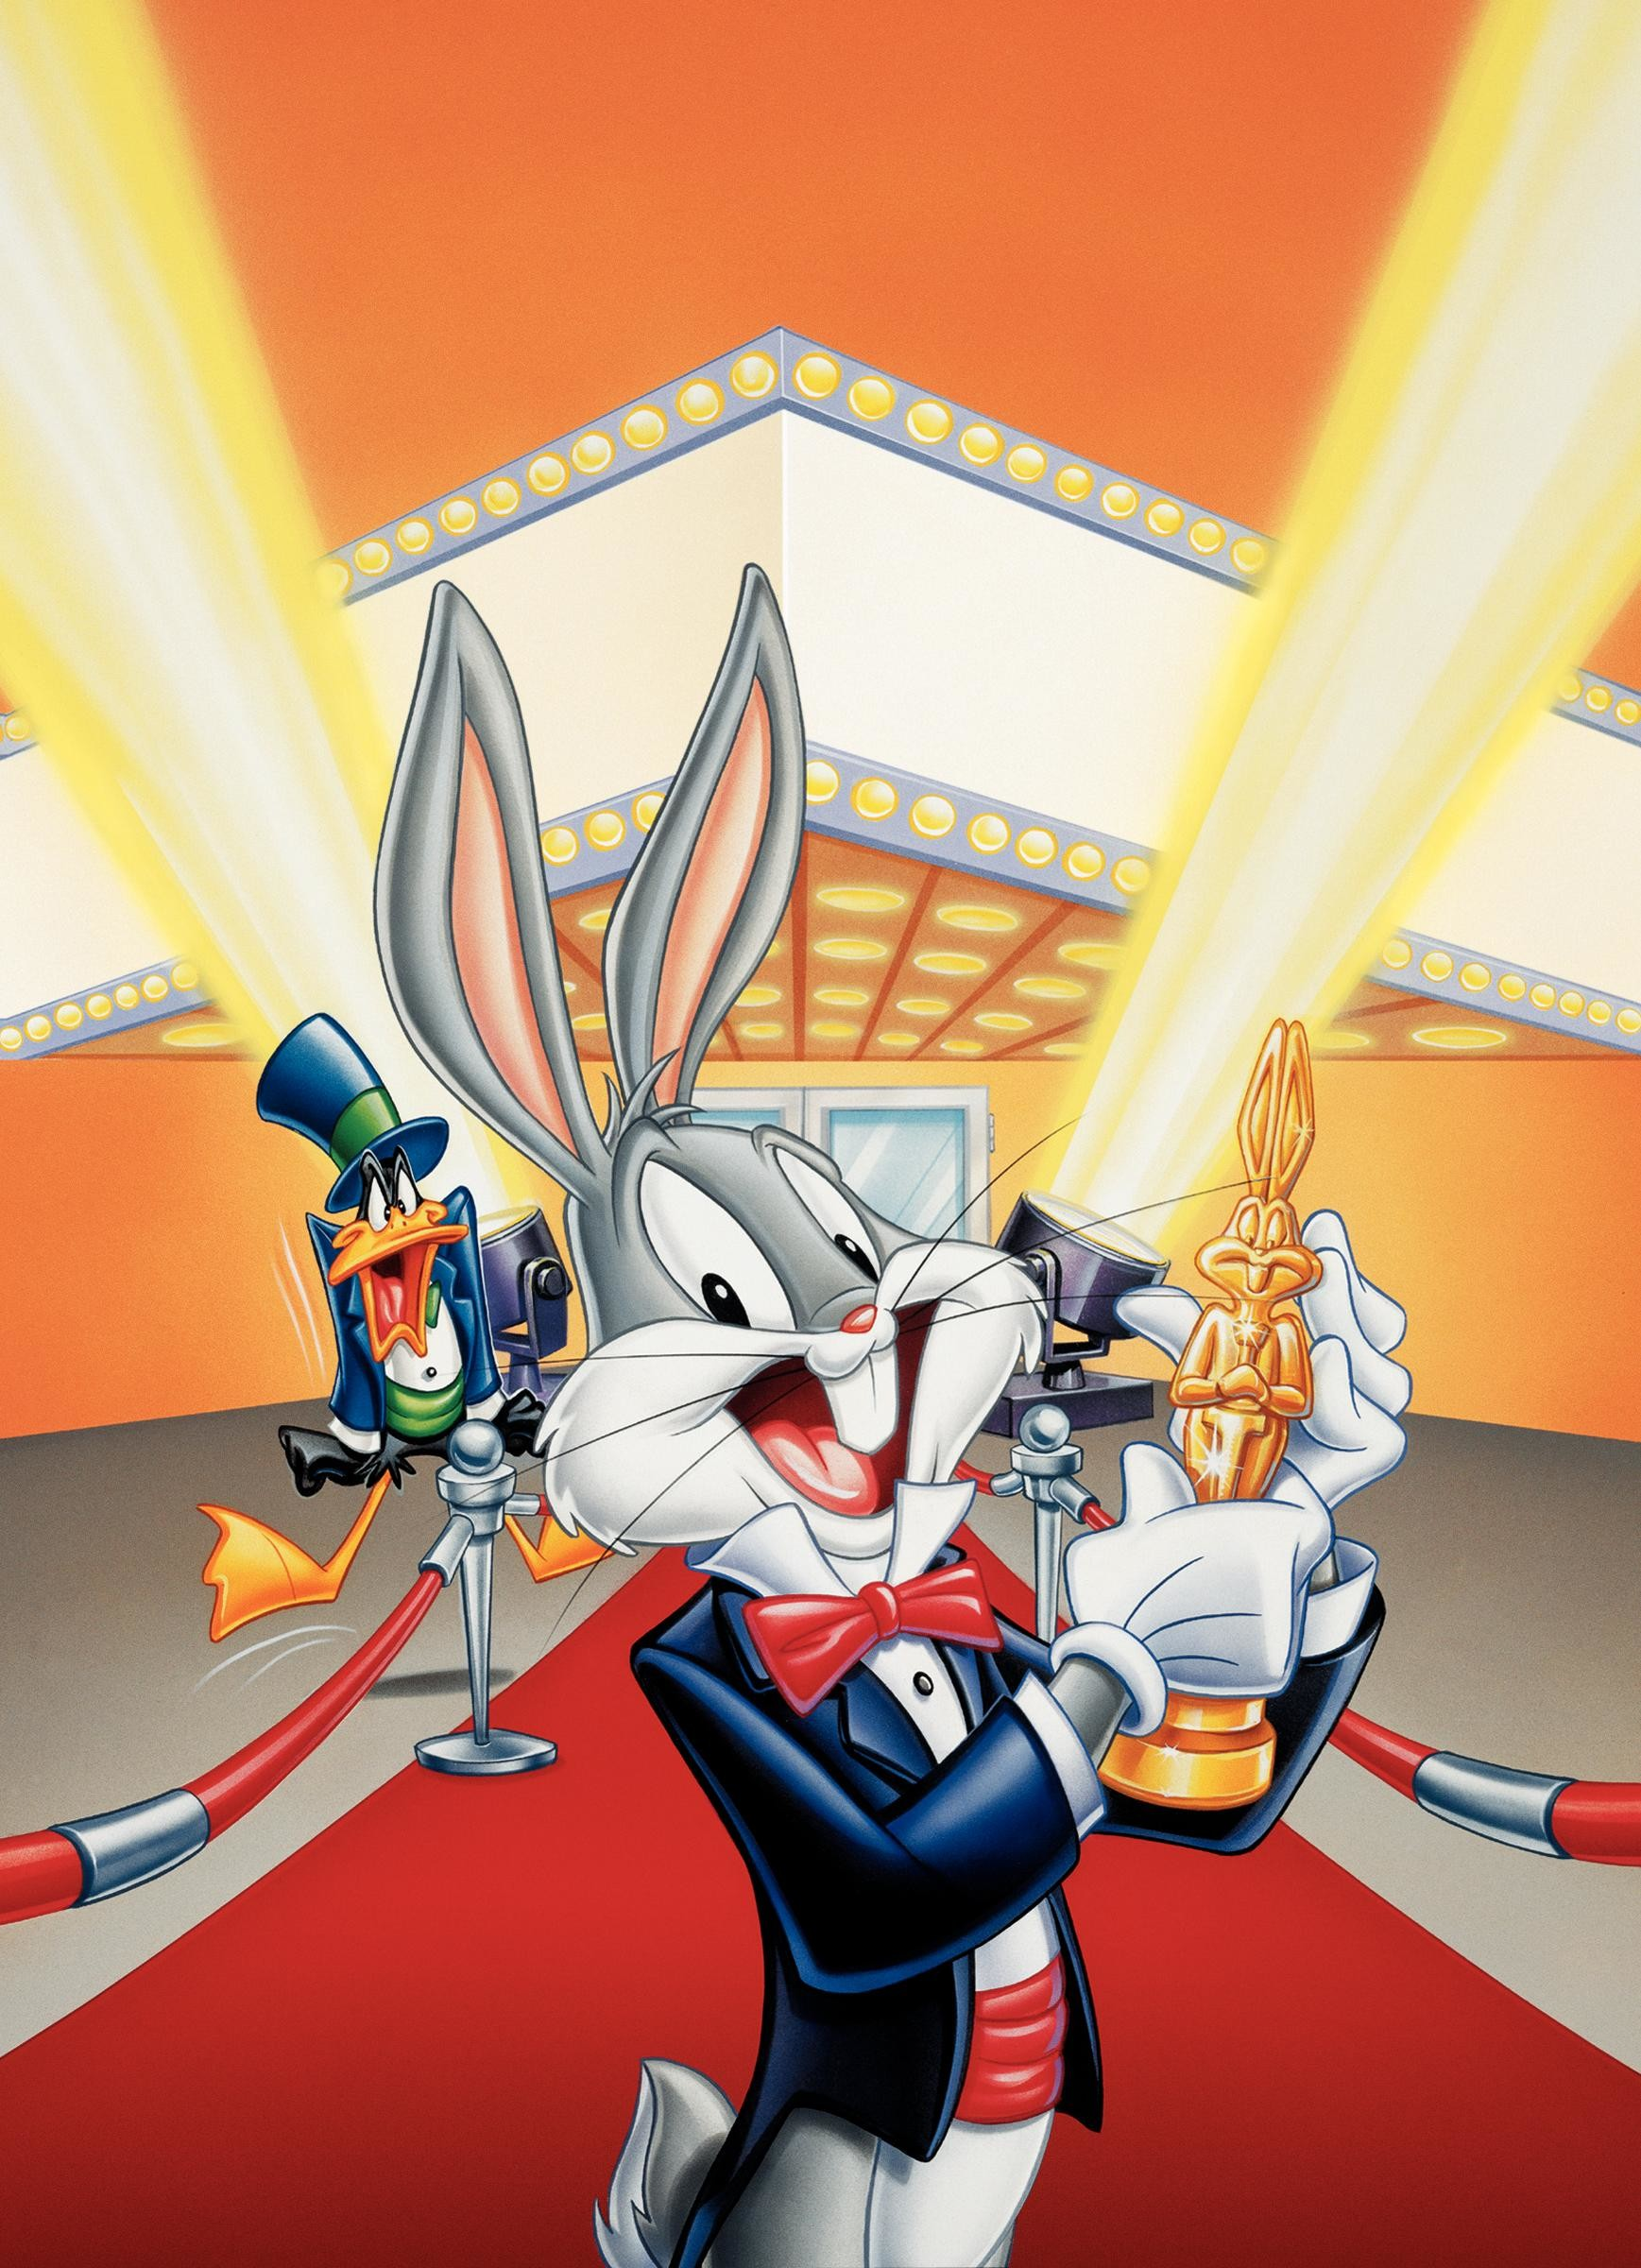 Res: 1737x2400, Bugs Bunny Is the Best